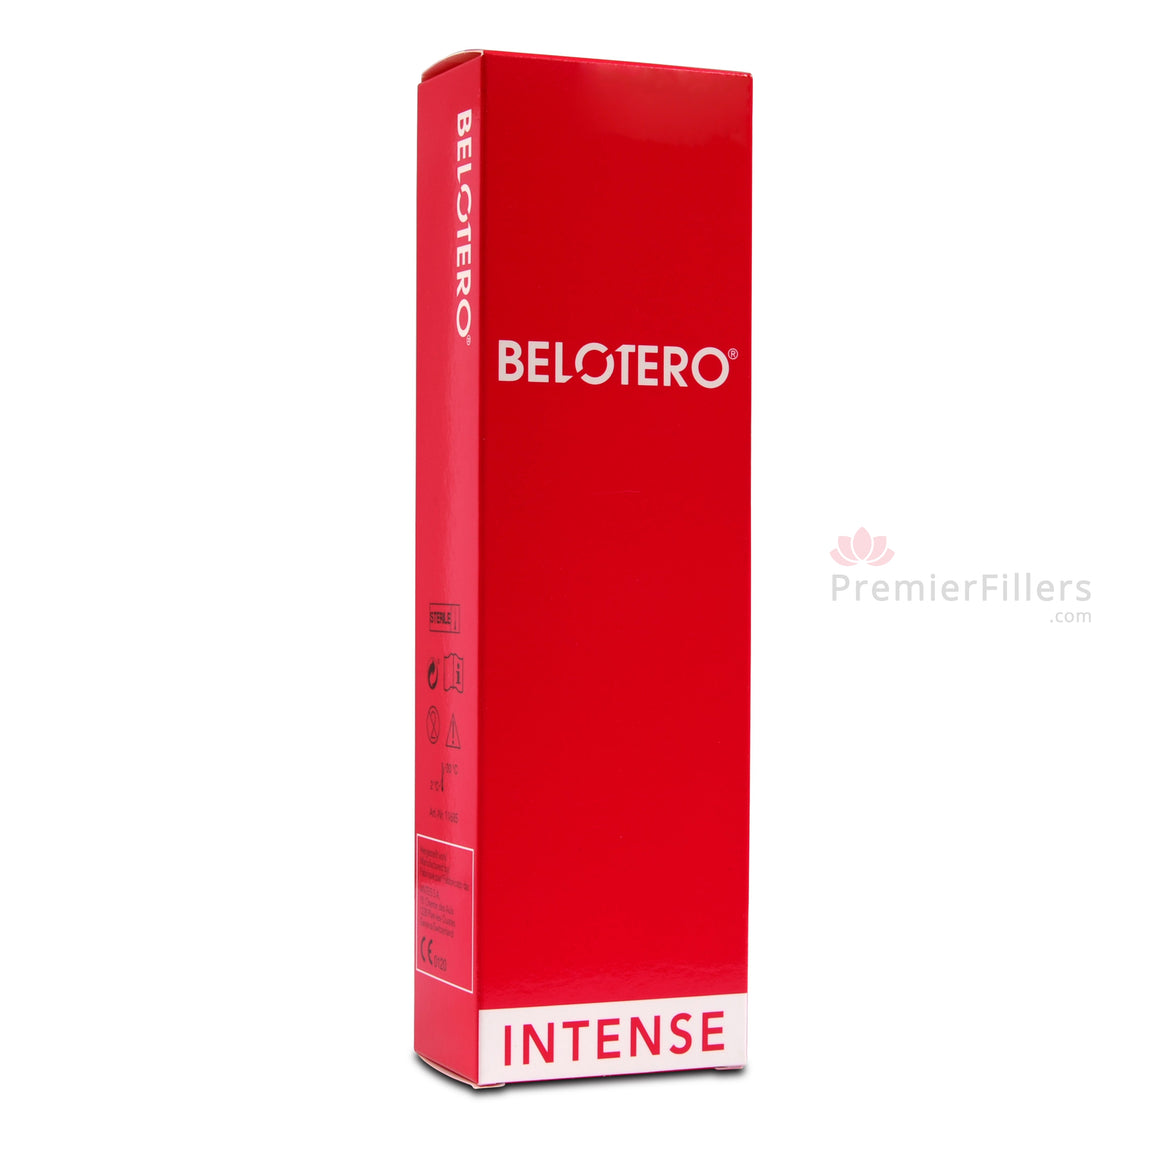 Belotero Intense (1x1ml)